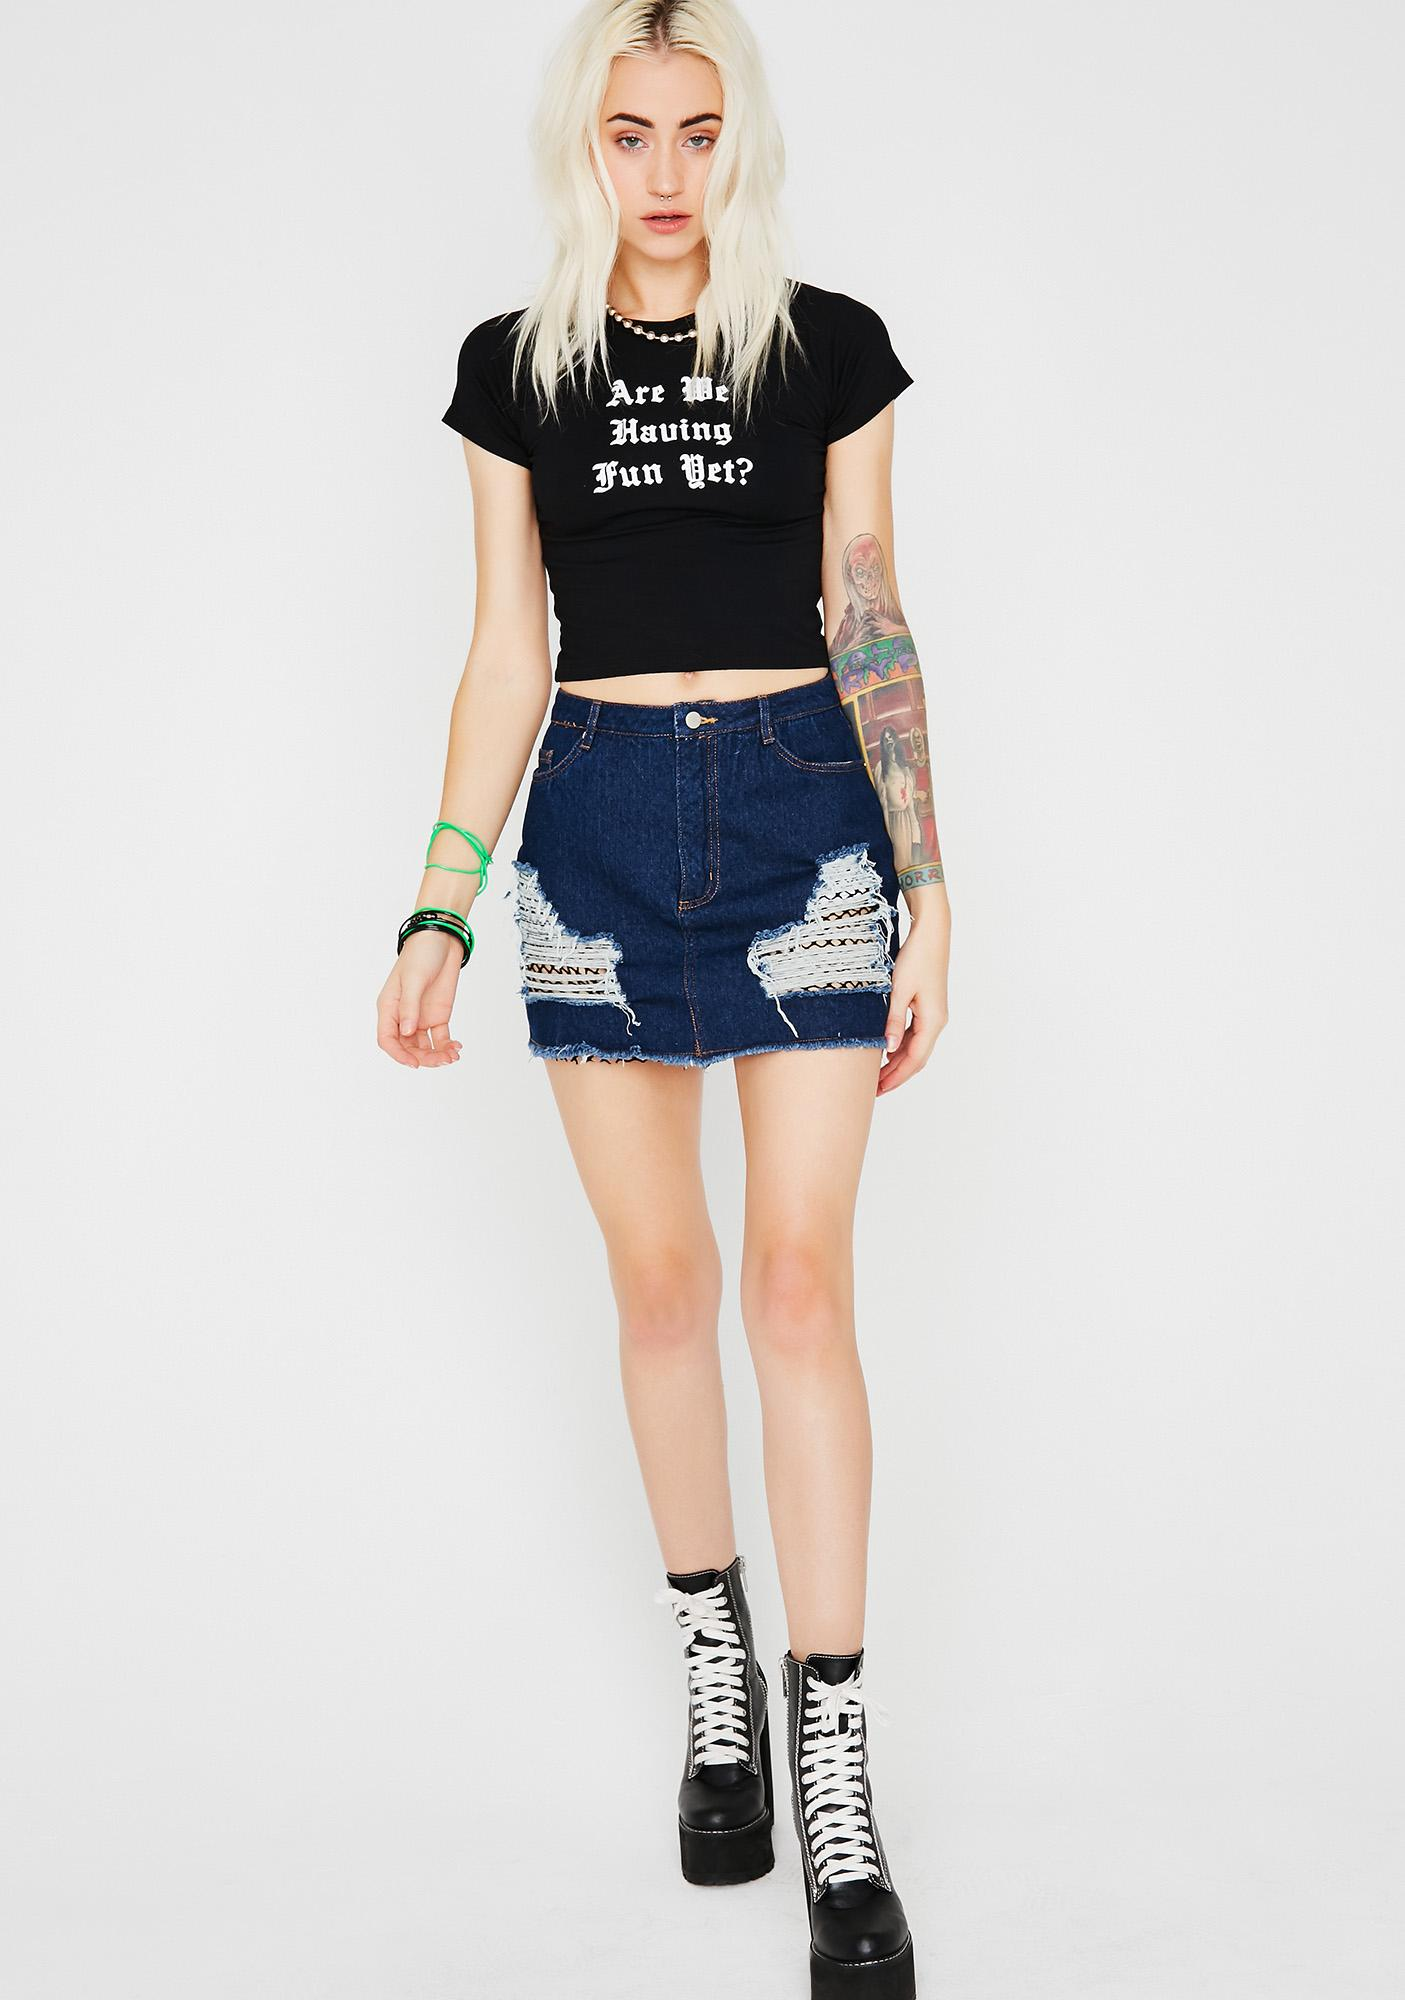 Scene Stealer Denim Skirt